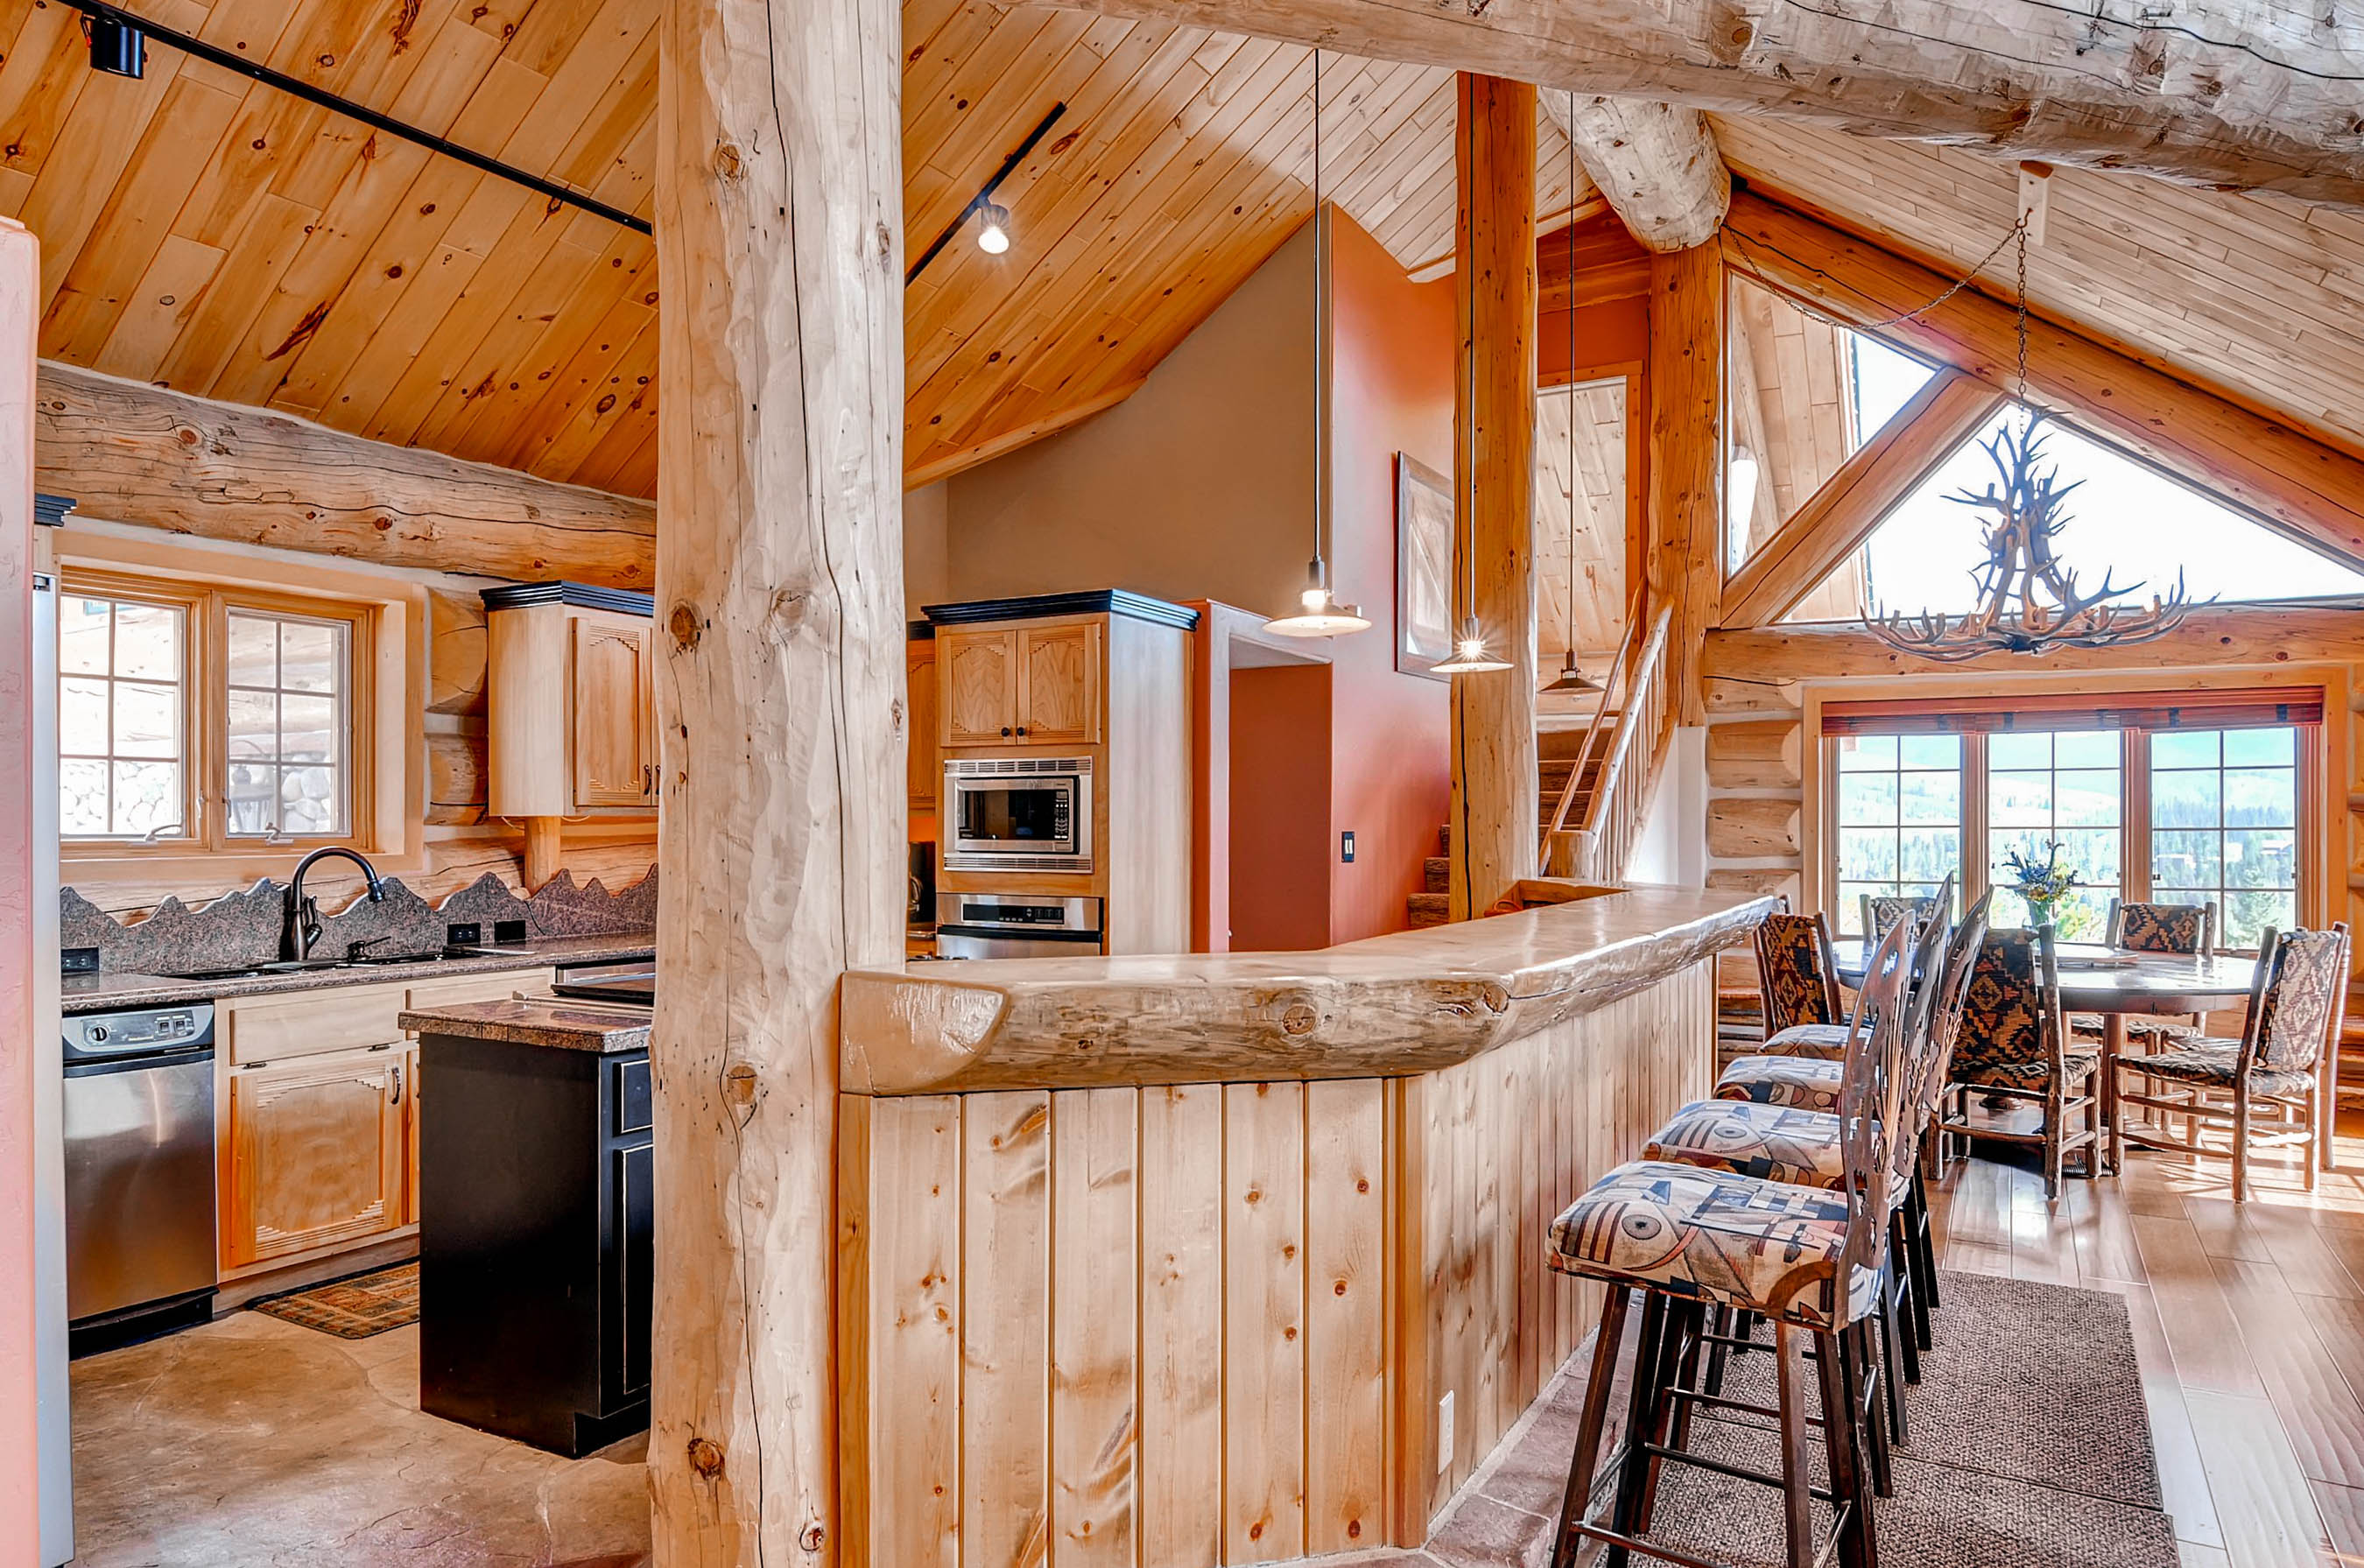 Epic Log Cabin In The Pines Vacation Rental In Dillon   RedAwning